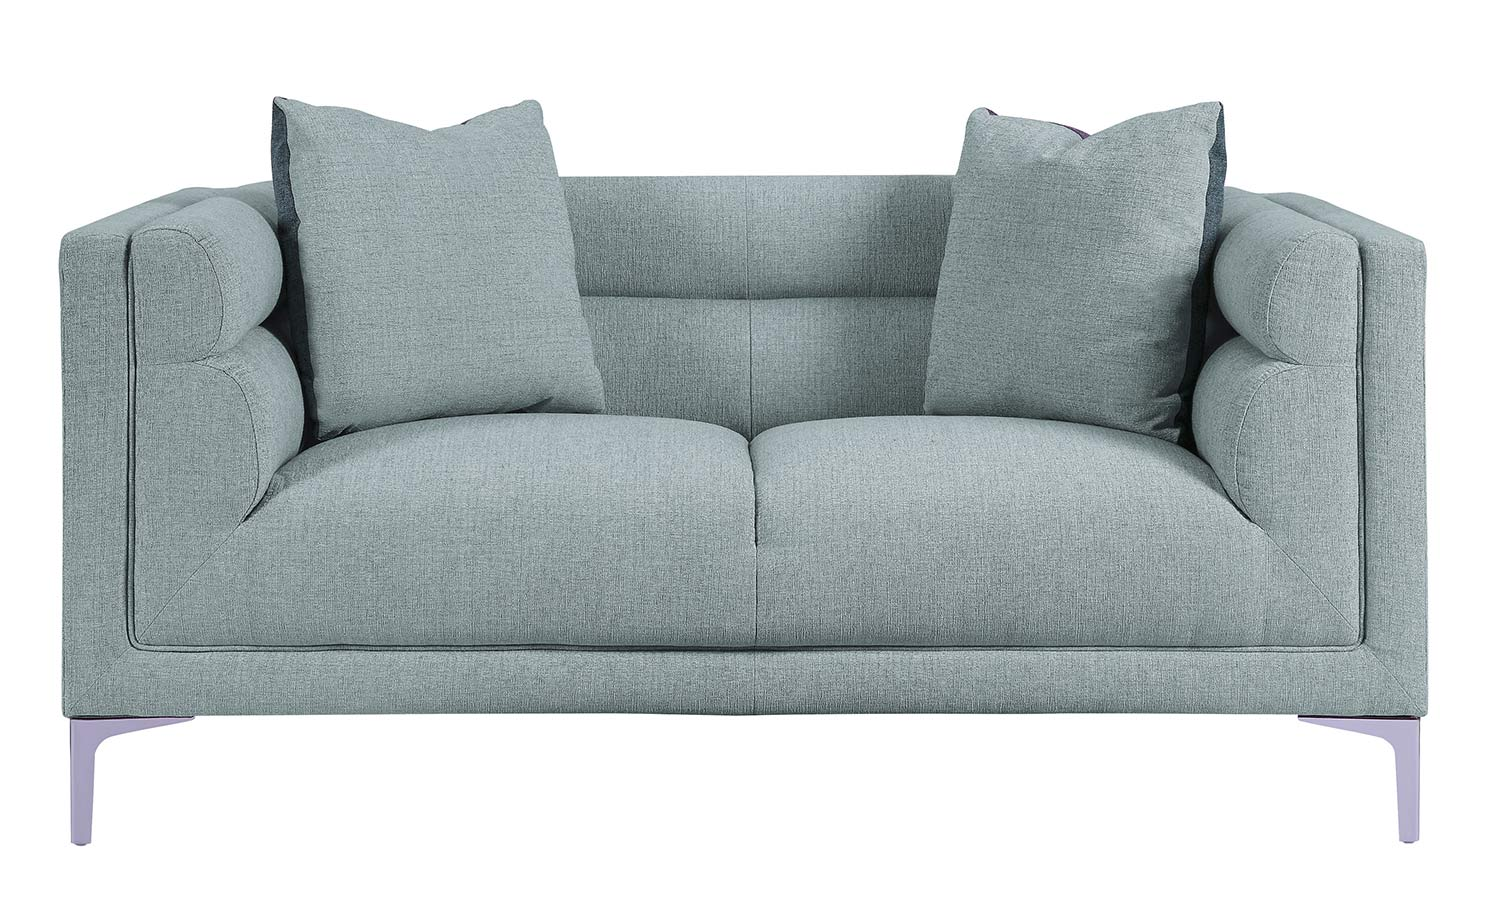 Homelegance Vernice Love Seat - Light fog gray